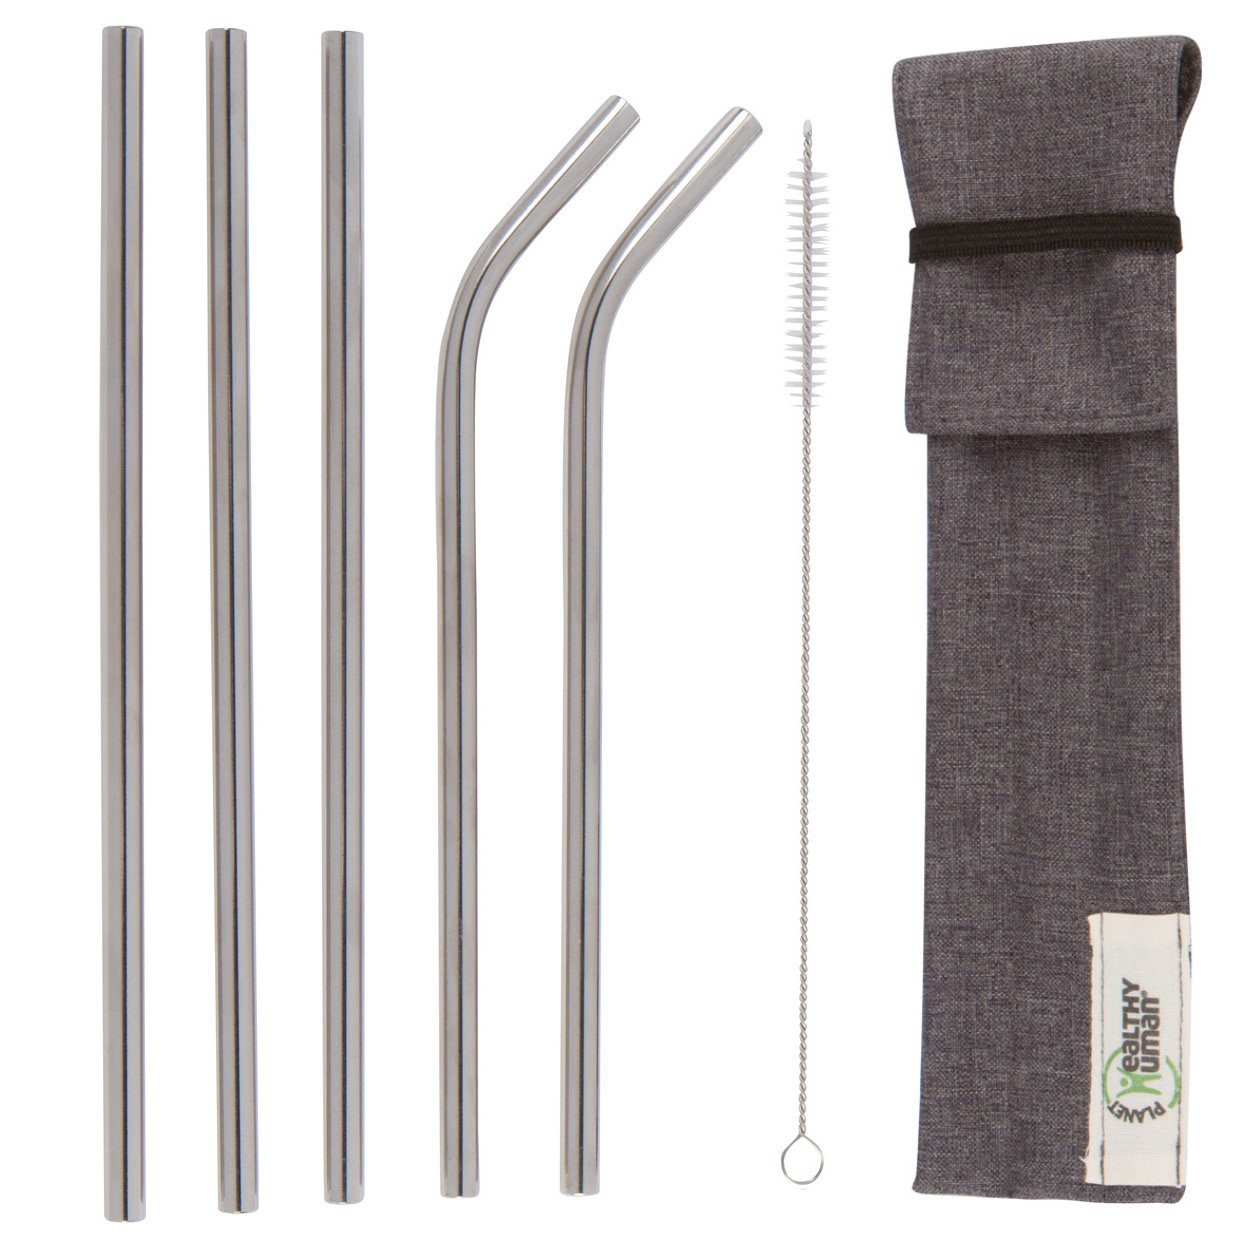 Healthy Human Reusable Stainless Steel Straws | Complete Portable Stainless Steel Straw Kit | 5 Straws - 3 Straight, 2 Curved | Includes Straw Cleaner and Travel Case | Great for Smoothies, Water by Healthy Human